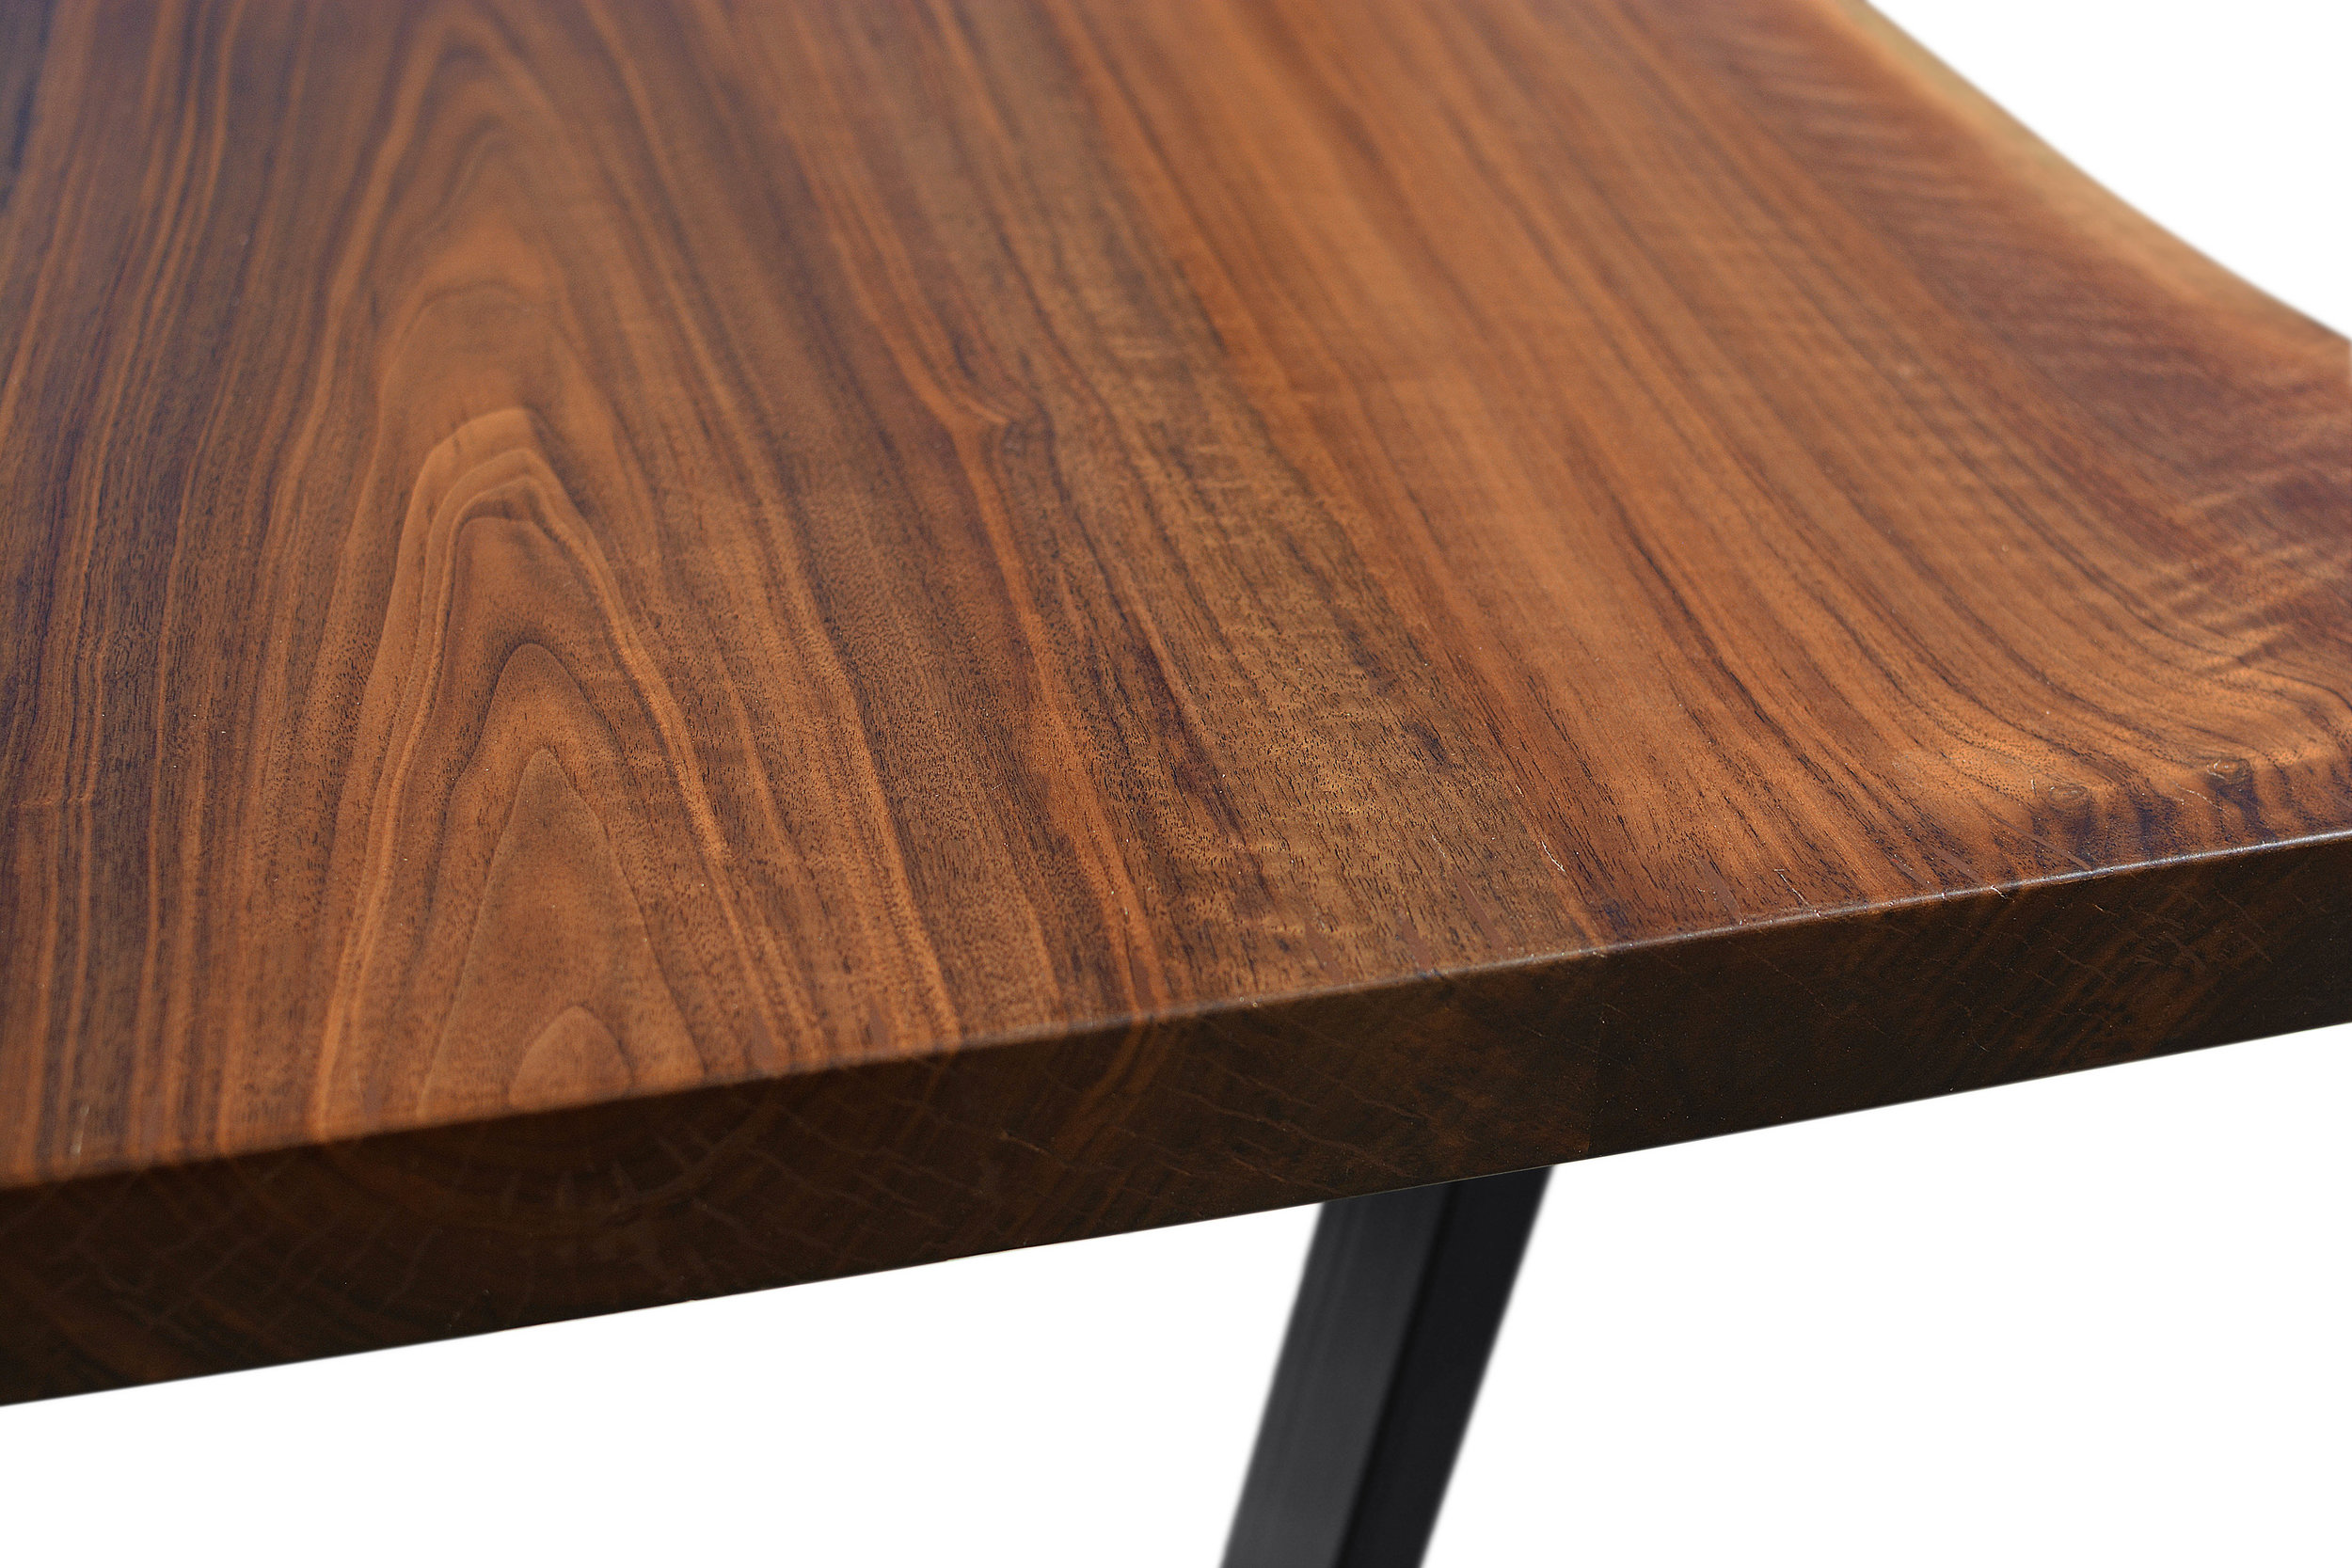 Etz & Steel Iris Live Edge Walnut Coffee Table Close Up 5.JPG